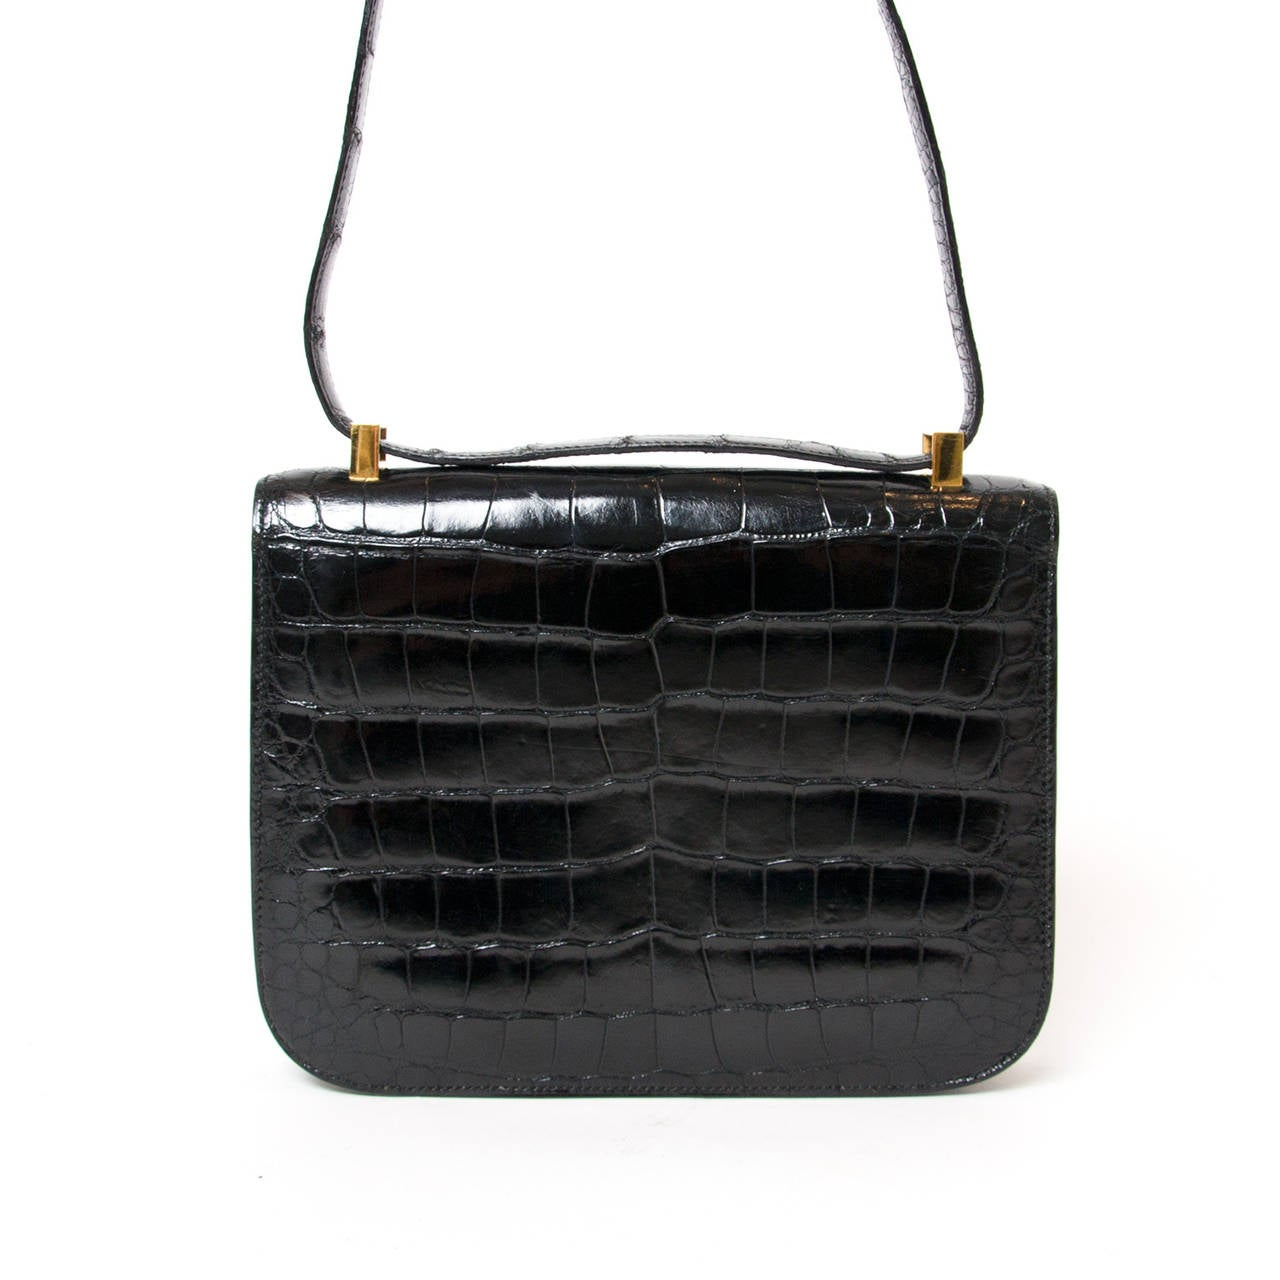 Hermes Black Constance Bag Alligator 23 at 1stdibs